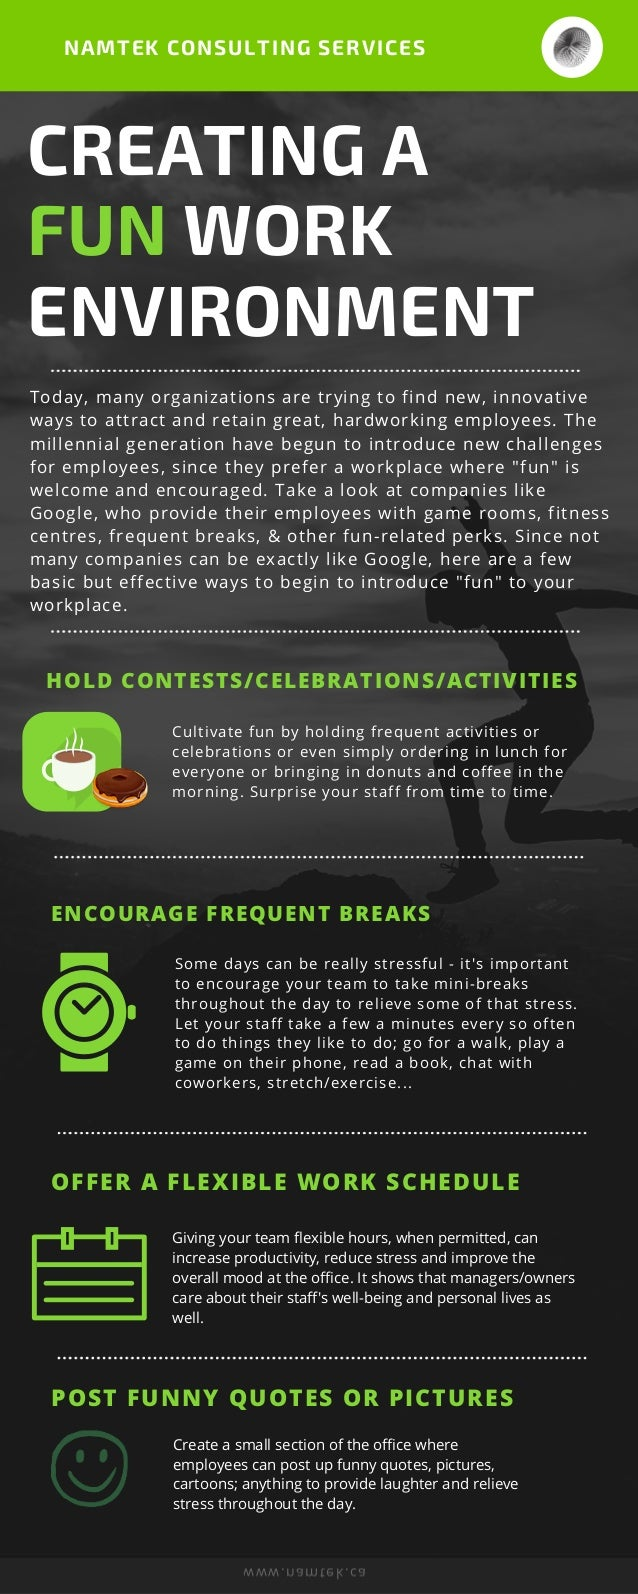 How To Create A Fun Workplace